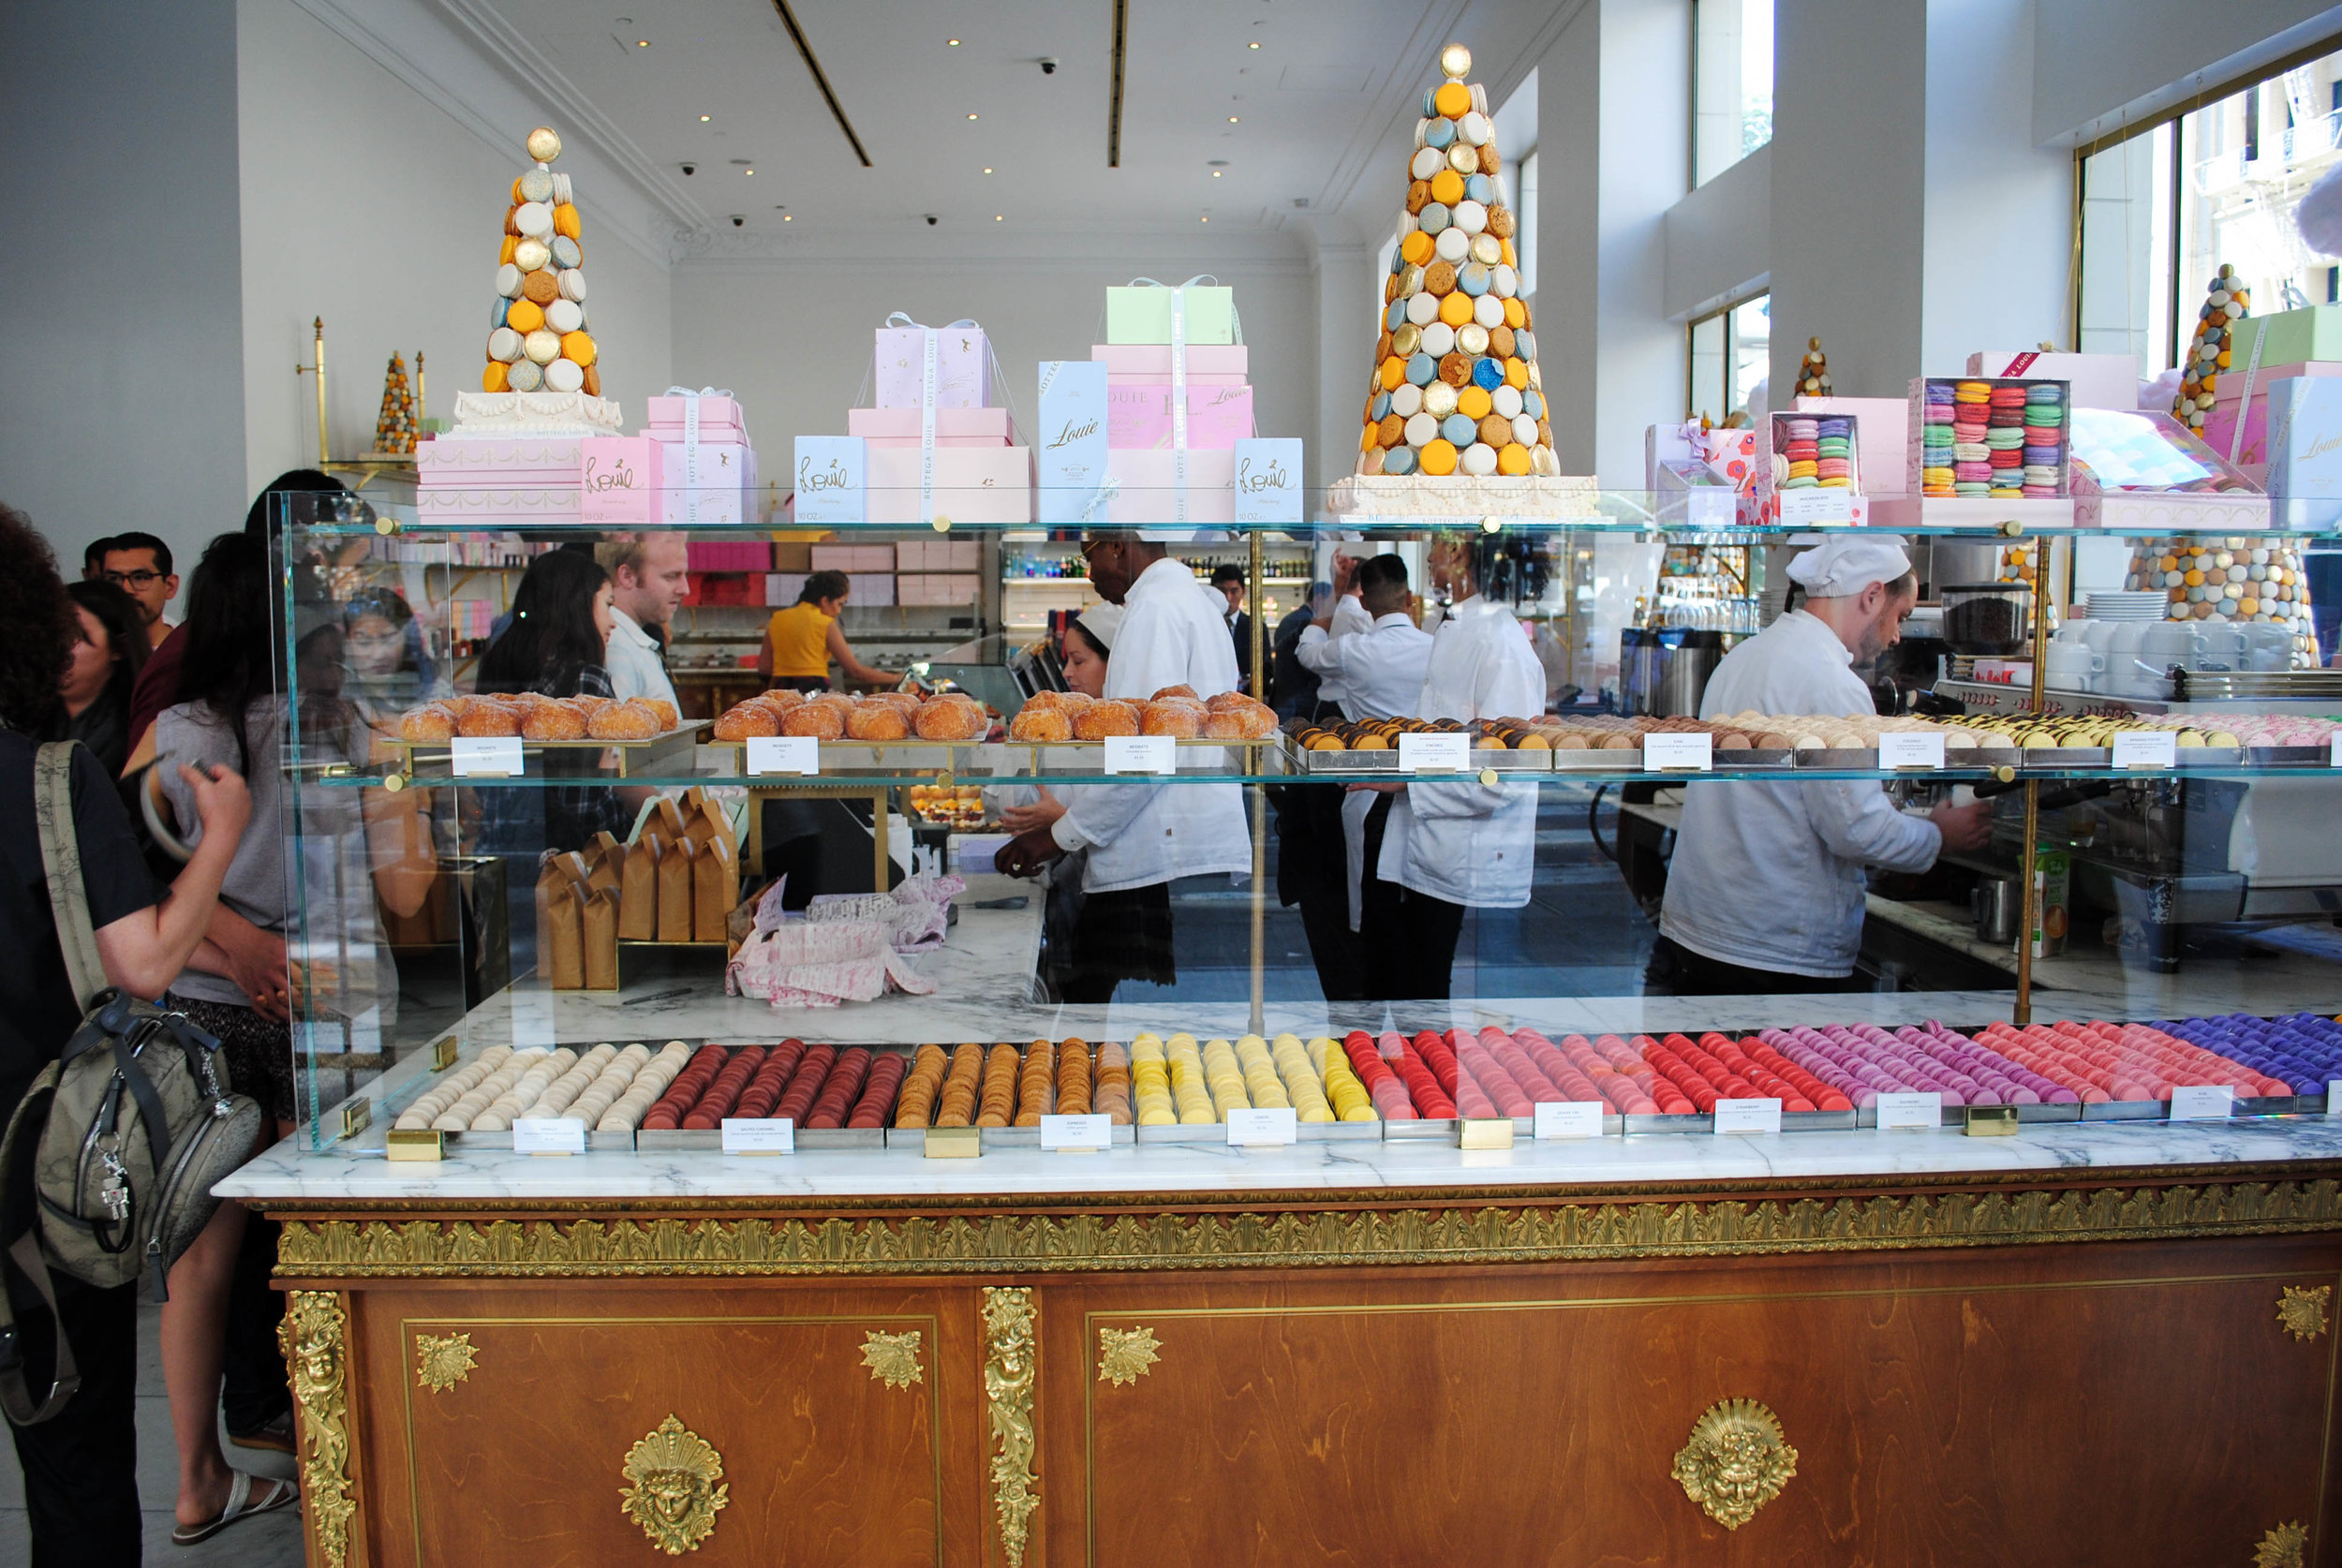 Macaron case, Bottega Louie, Downtown Los Angeles, CA